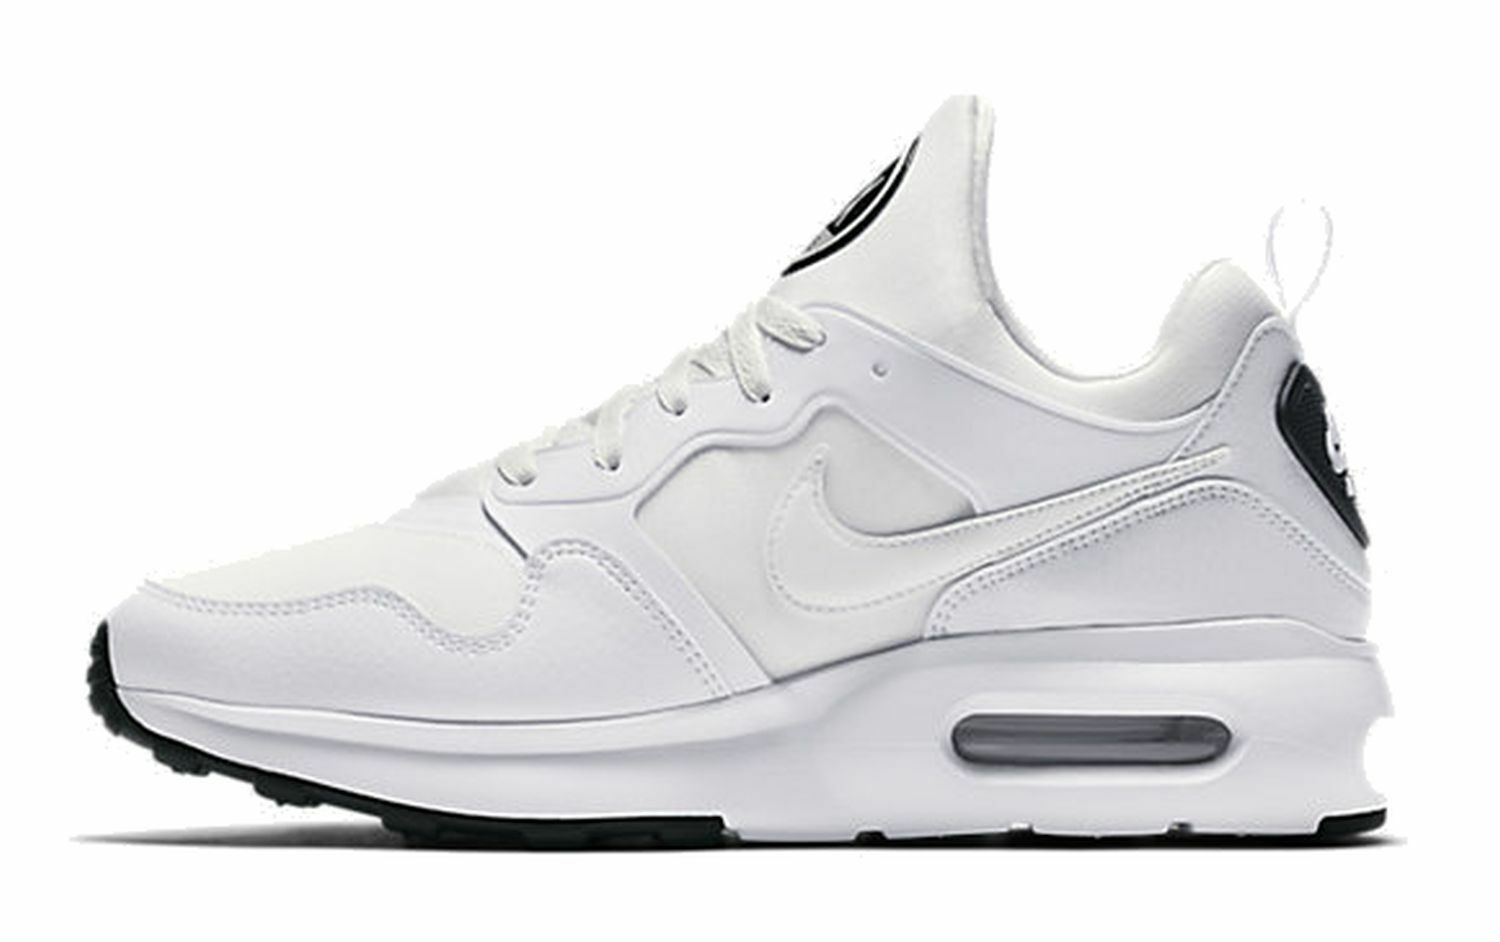 Nike Men's Casual shoes Air Max Prime White